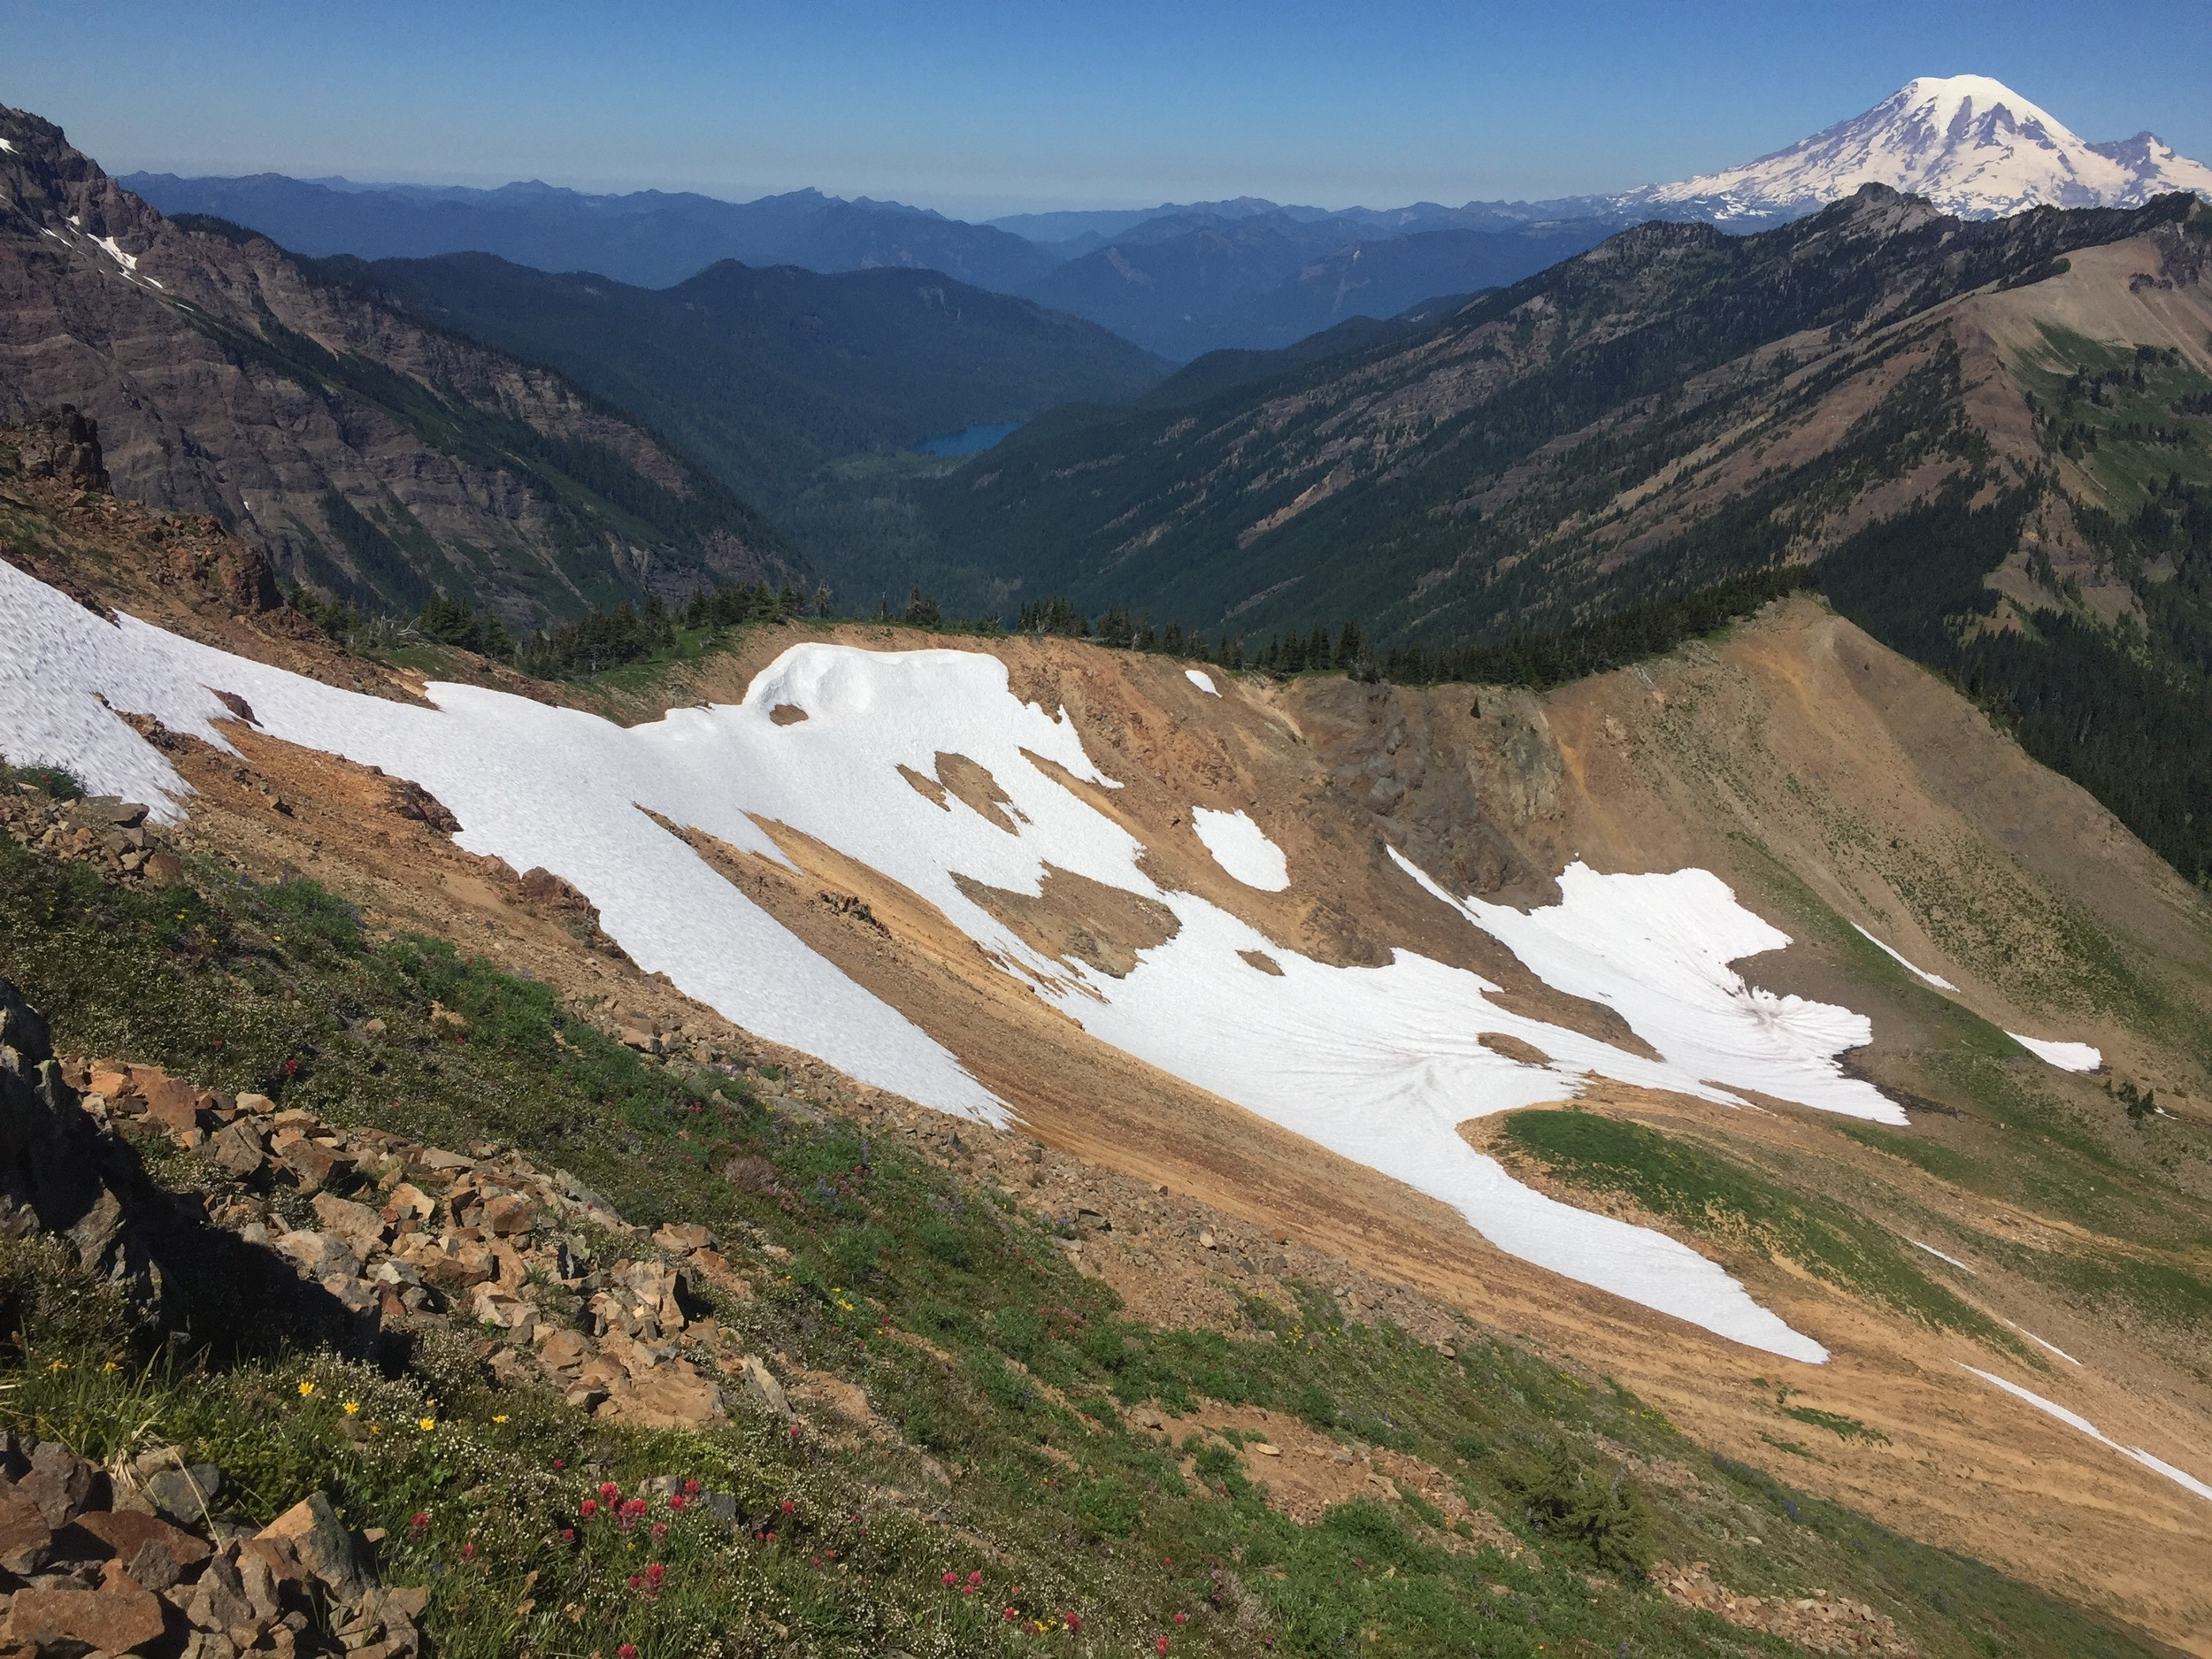 Views for days as we reach the first ridge (& Mt Rainier, naturally)